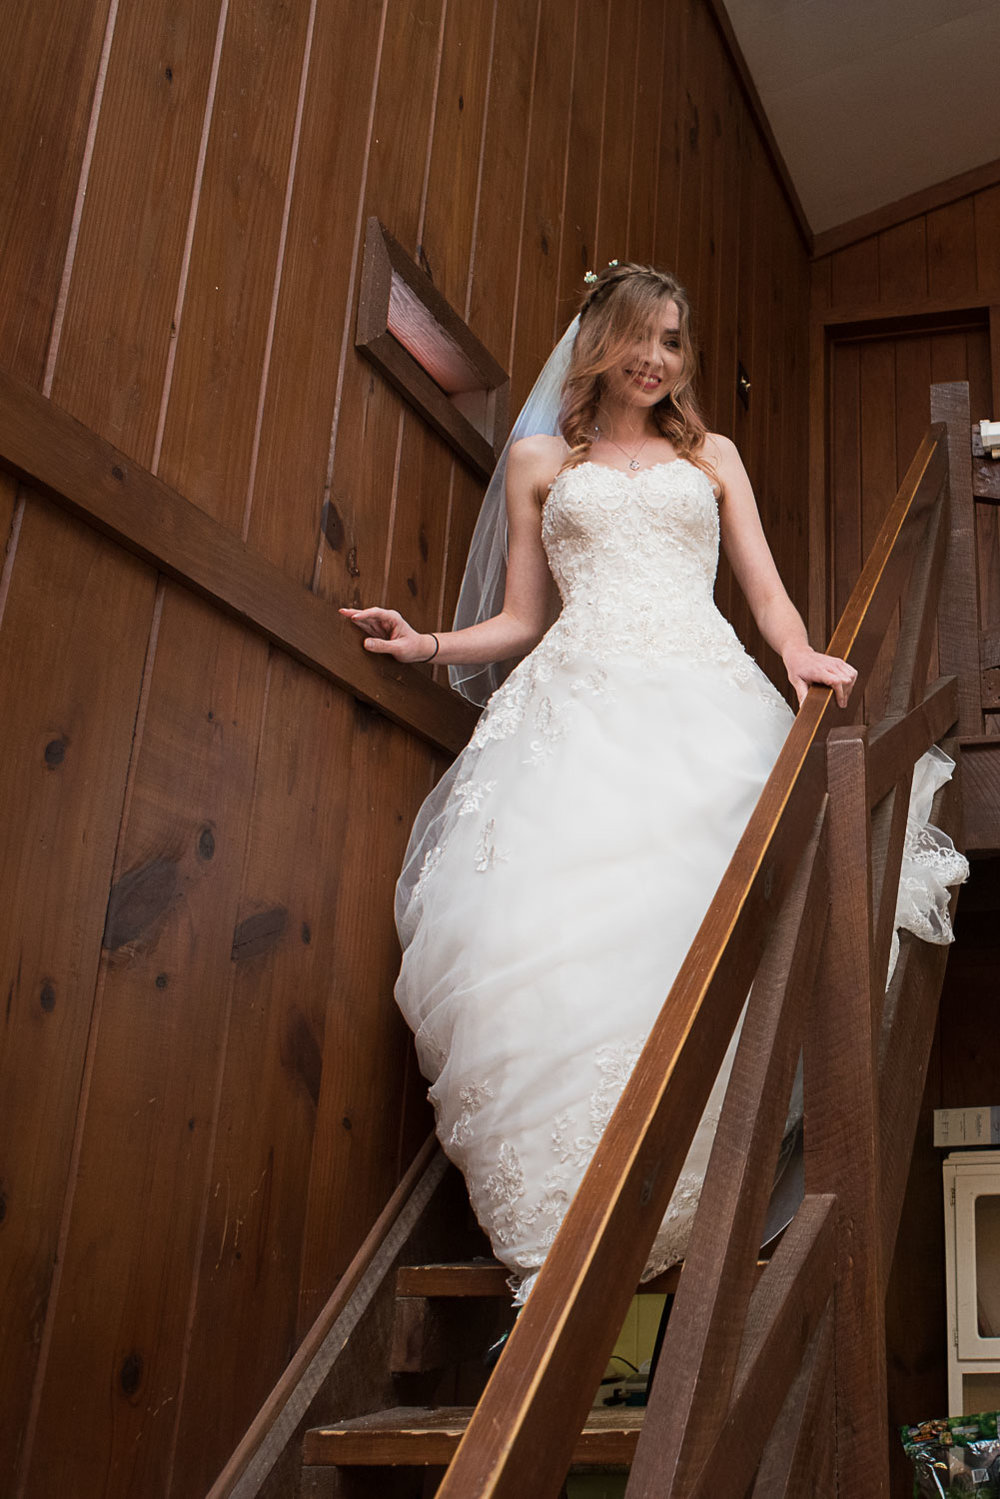 36 bride walking downstairs in family cabin in la grange.jpg